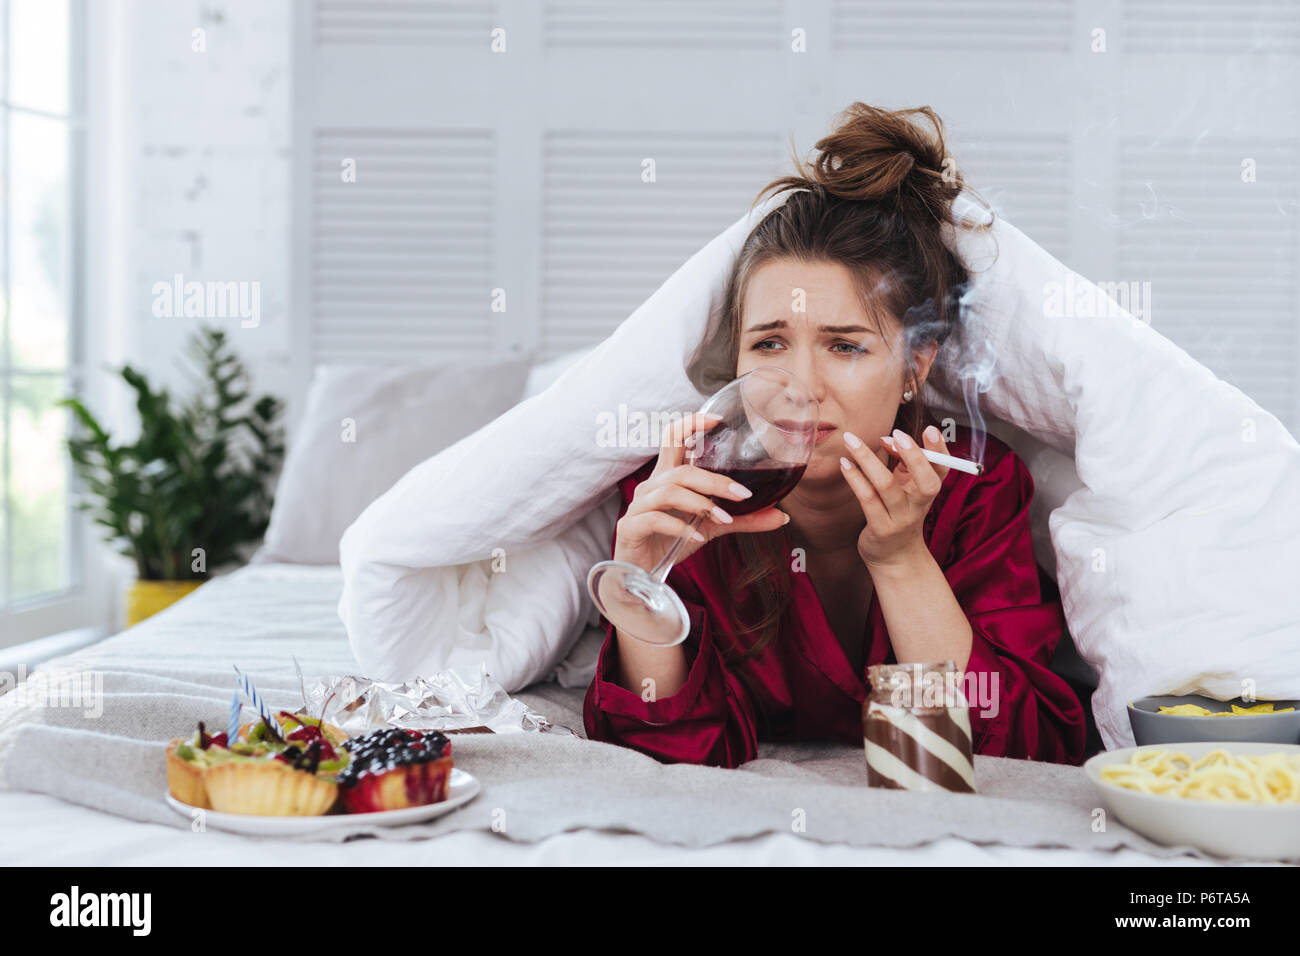 Heartbroken woman smoking while lying in bed drinking wine - Stock Image